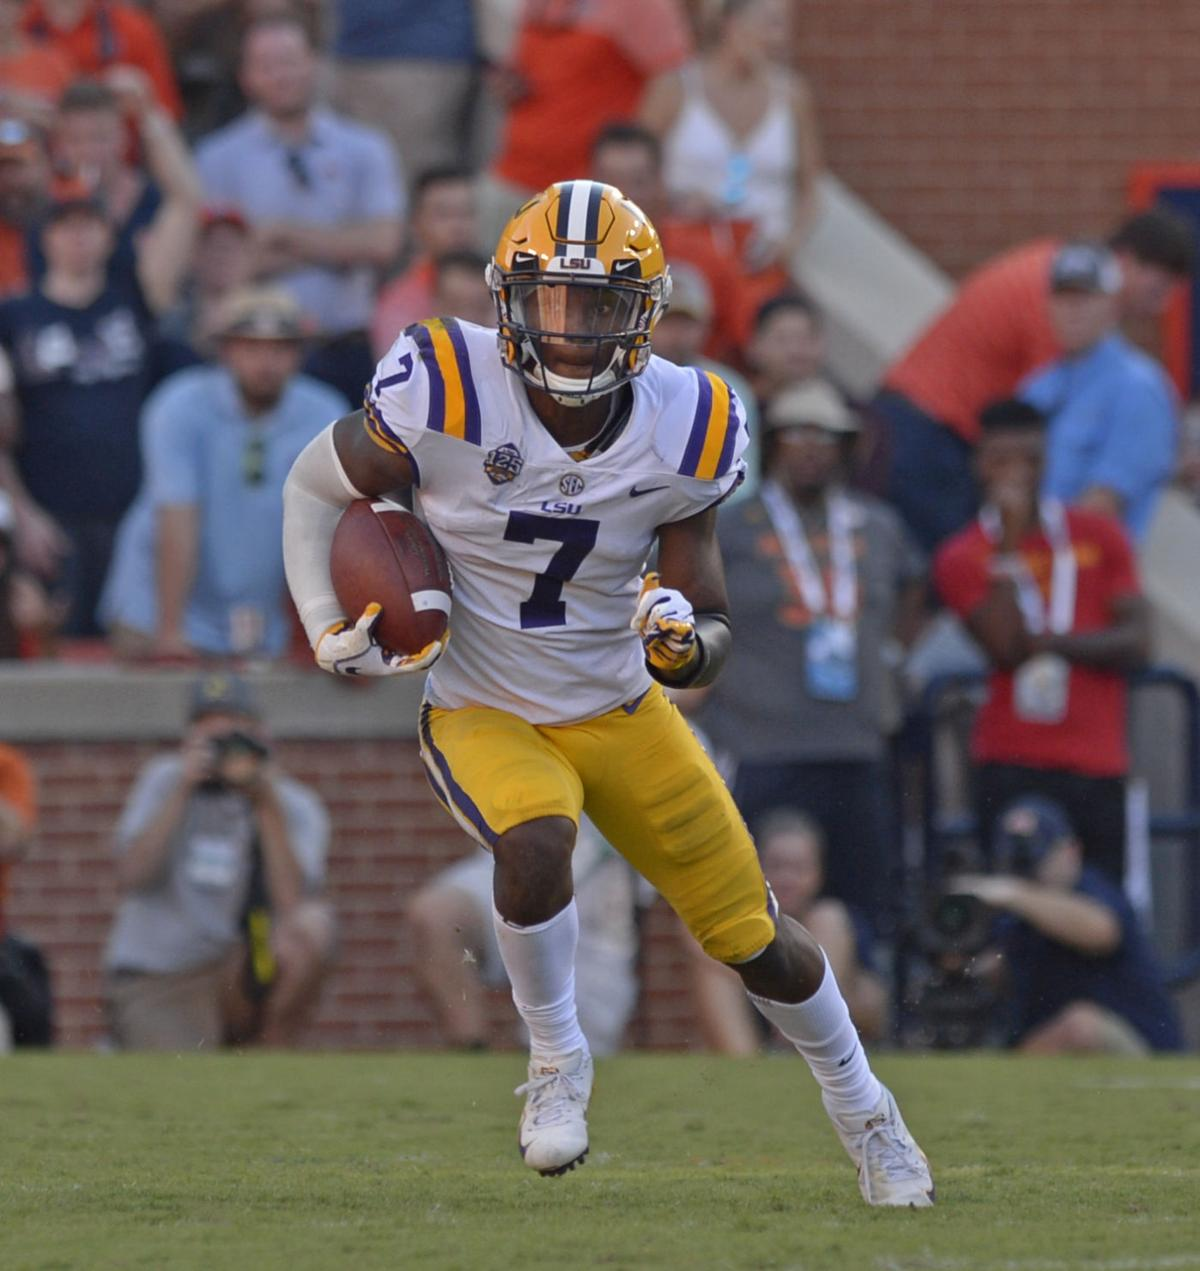 Mired in slump, LSU's Jonathan Giles changing jersey ...